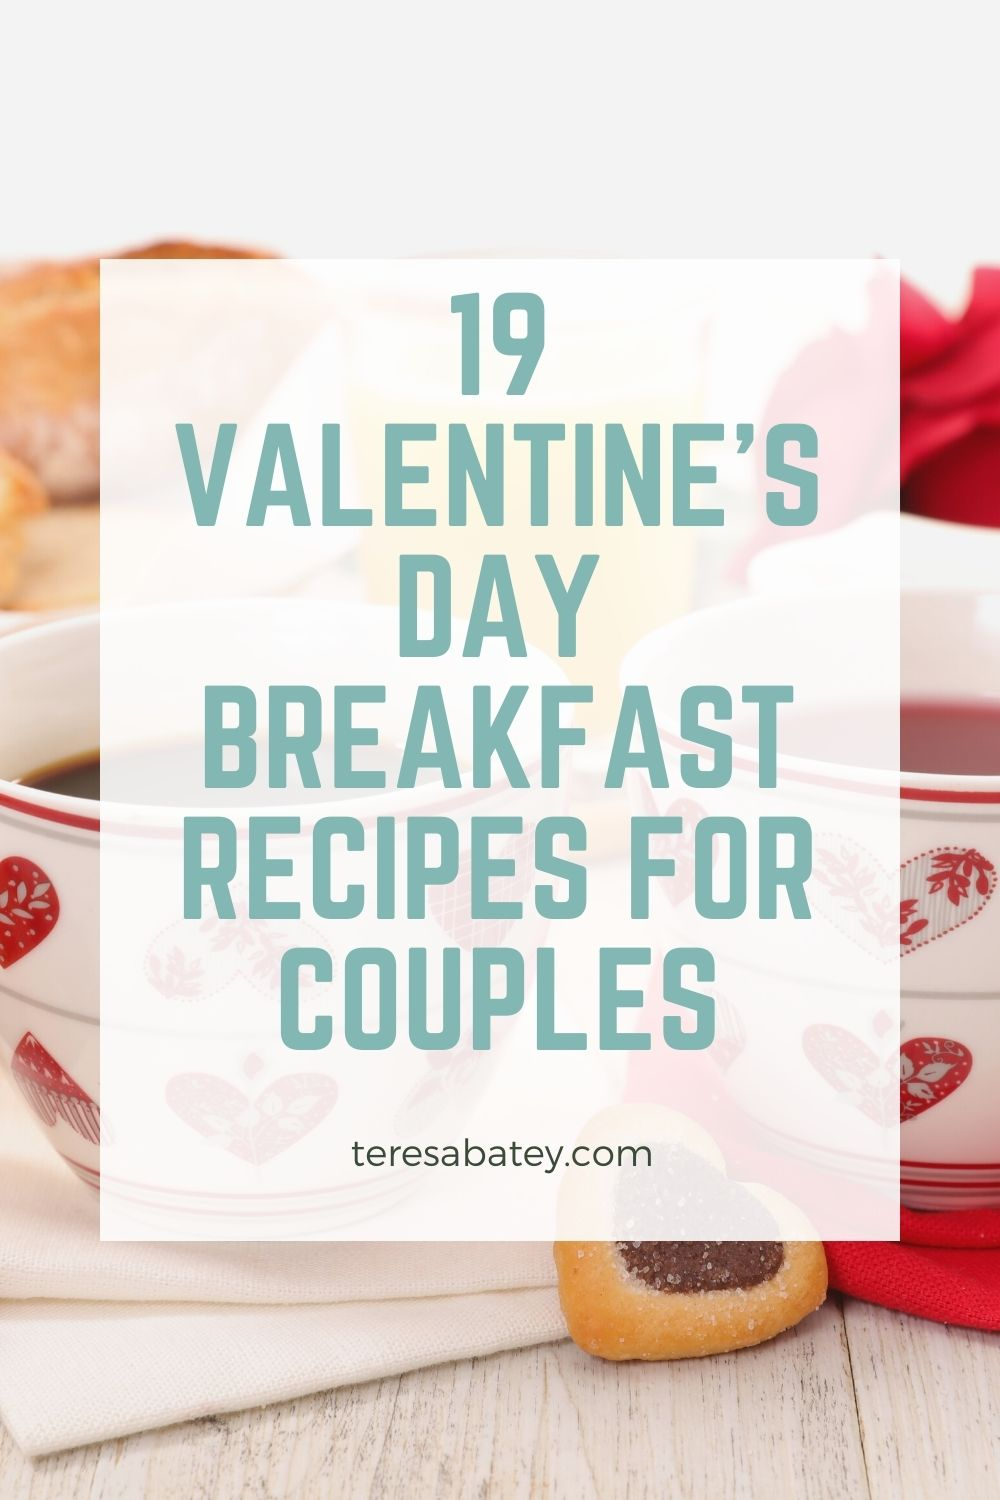 Valentines Day Breakfast Recipes for Couples